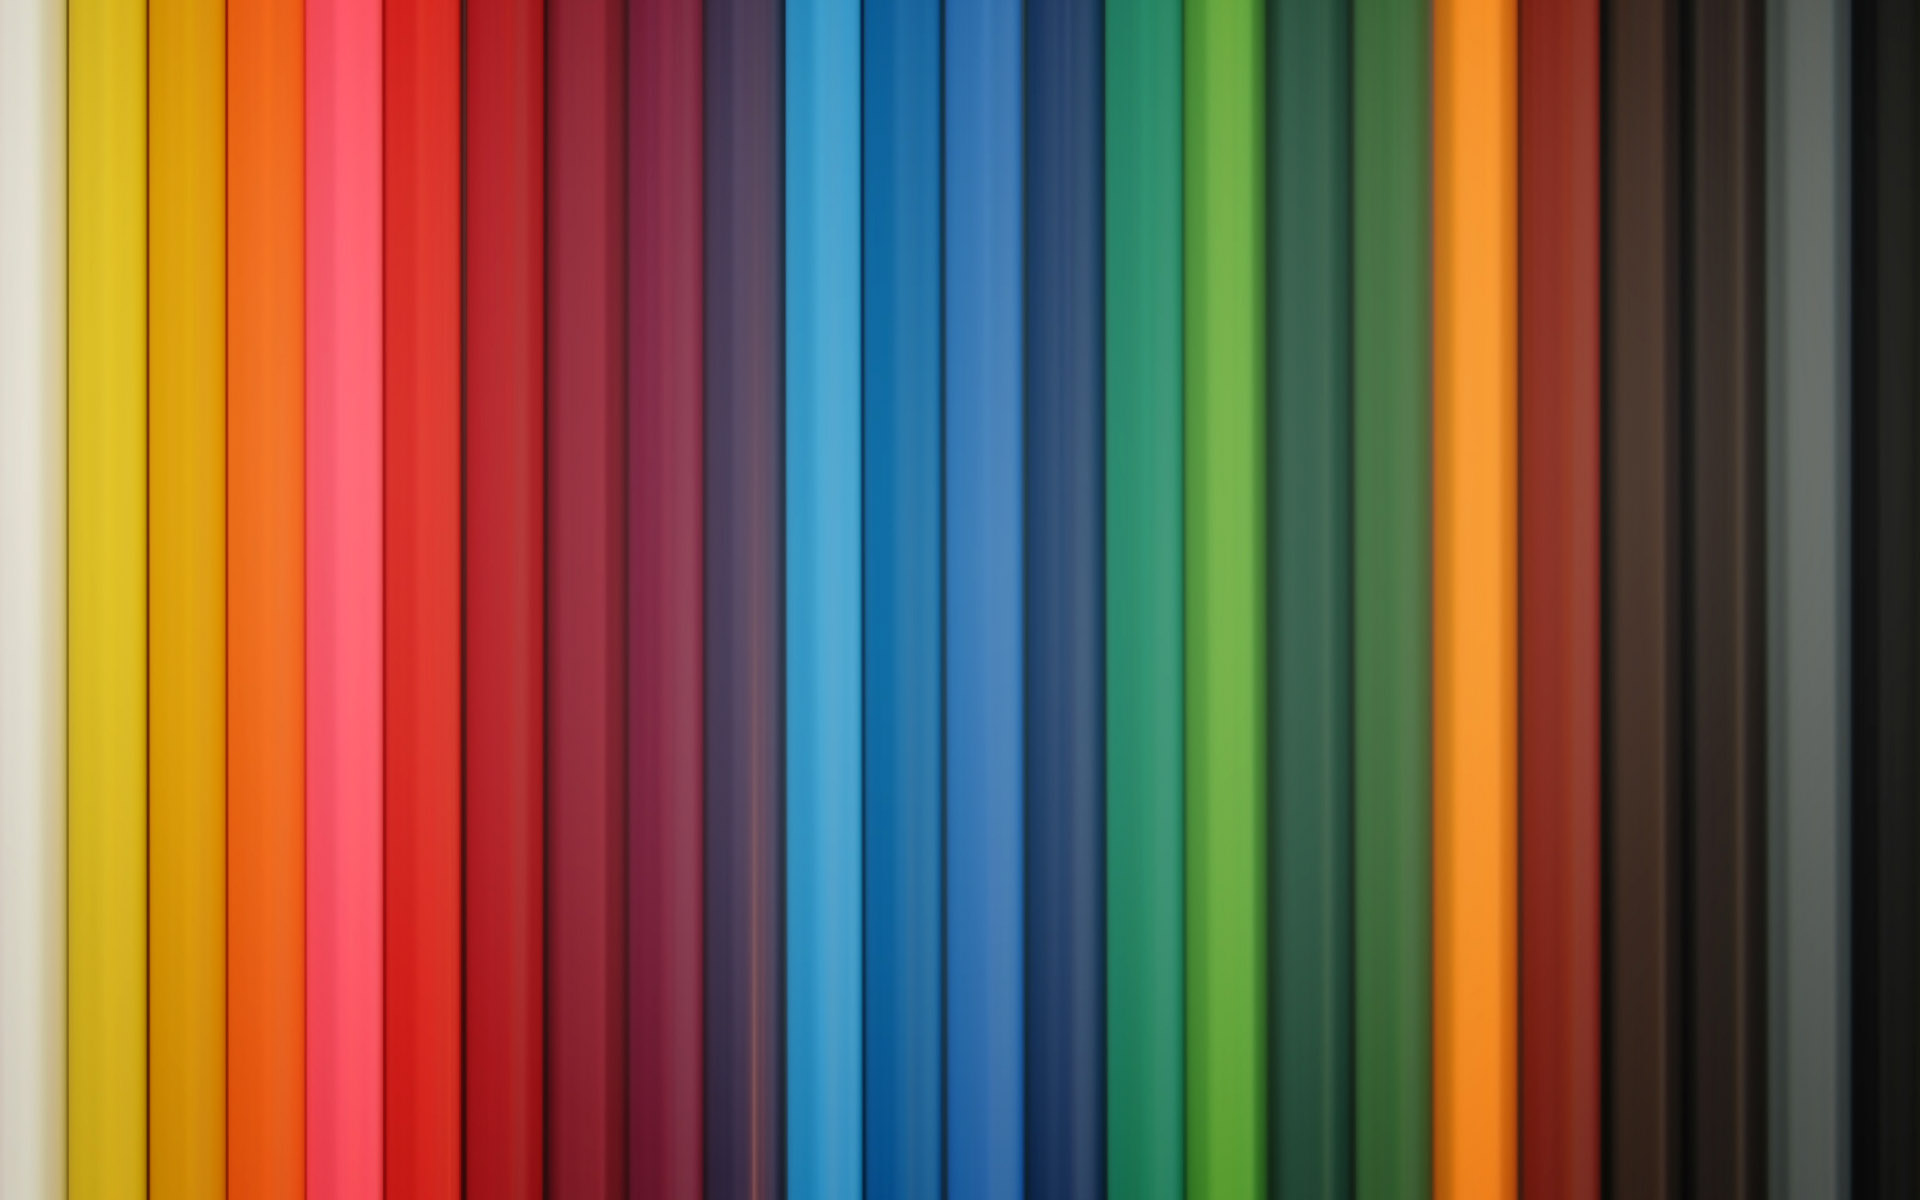 Colorful high-resolution background 25541